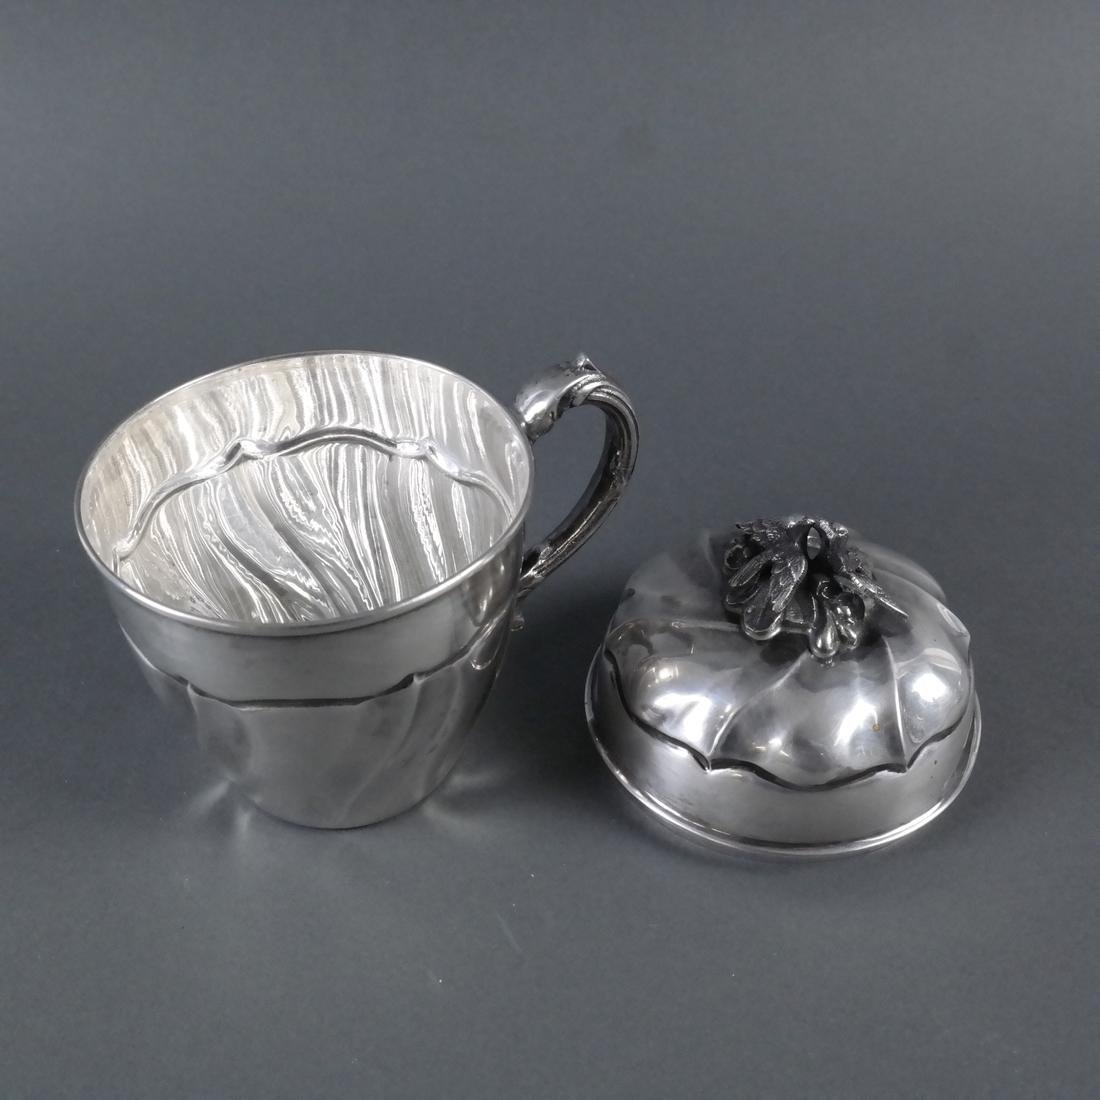 Silver Covered Cup With Swirl Motif - 5